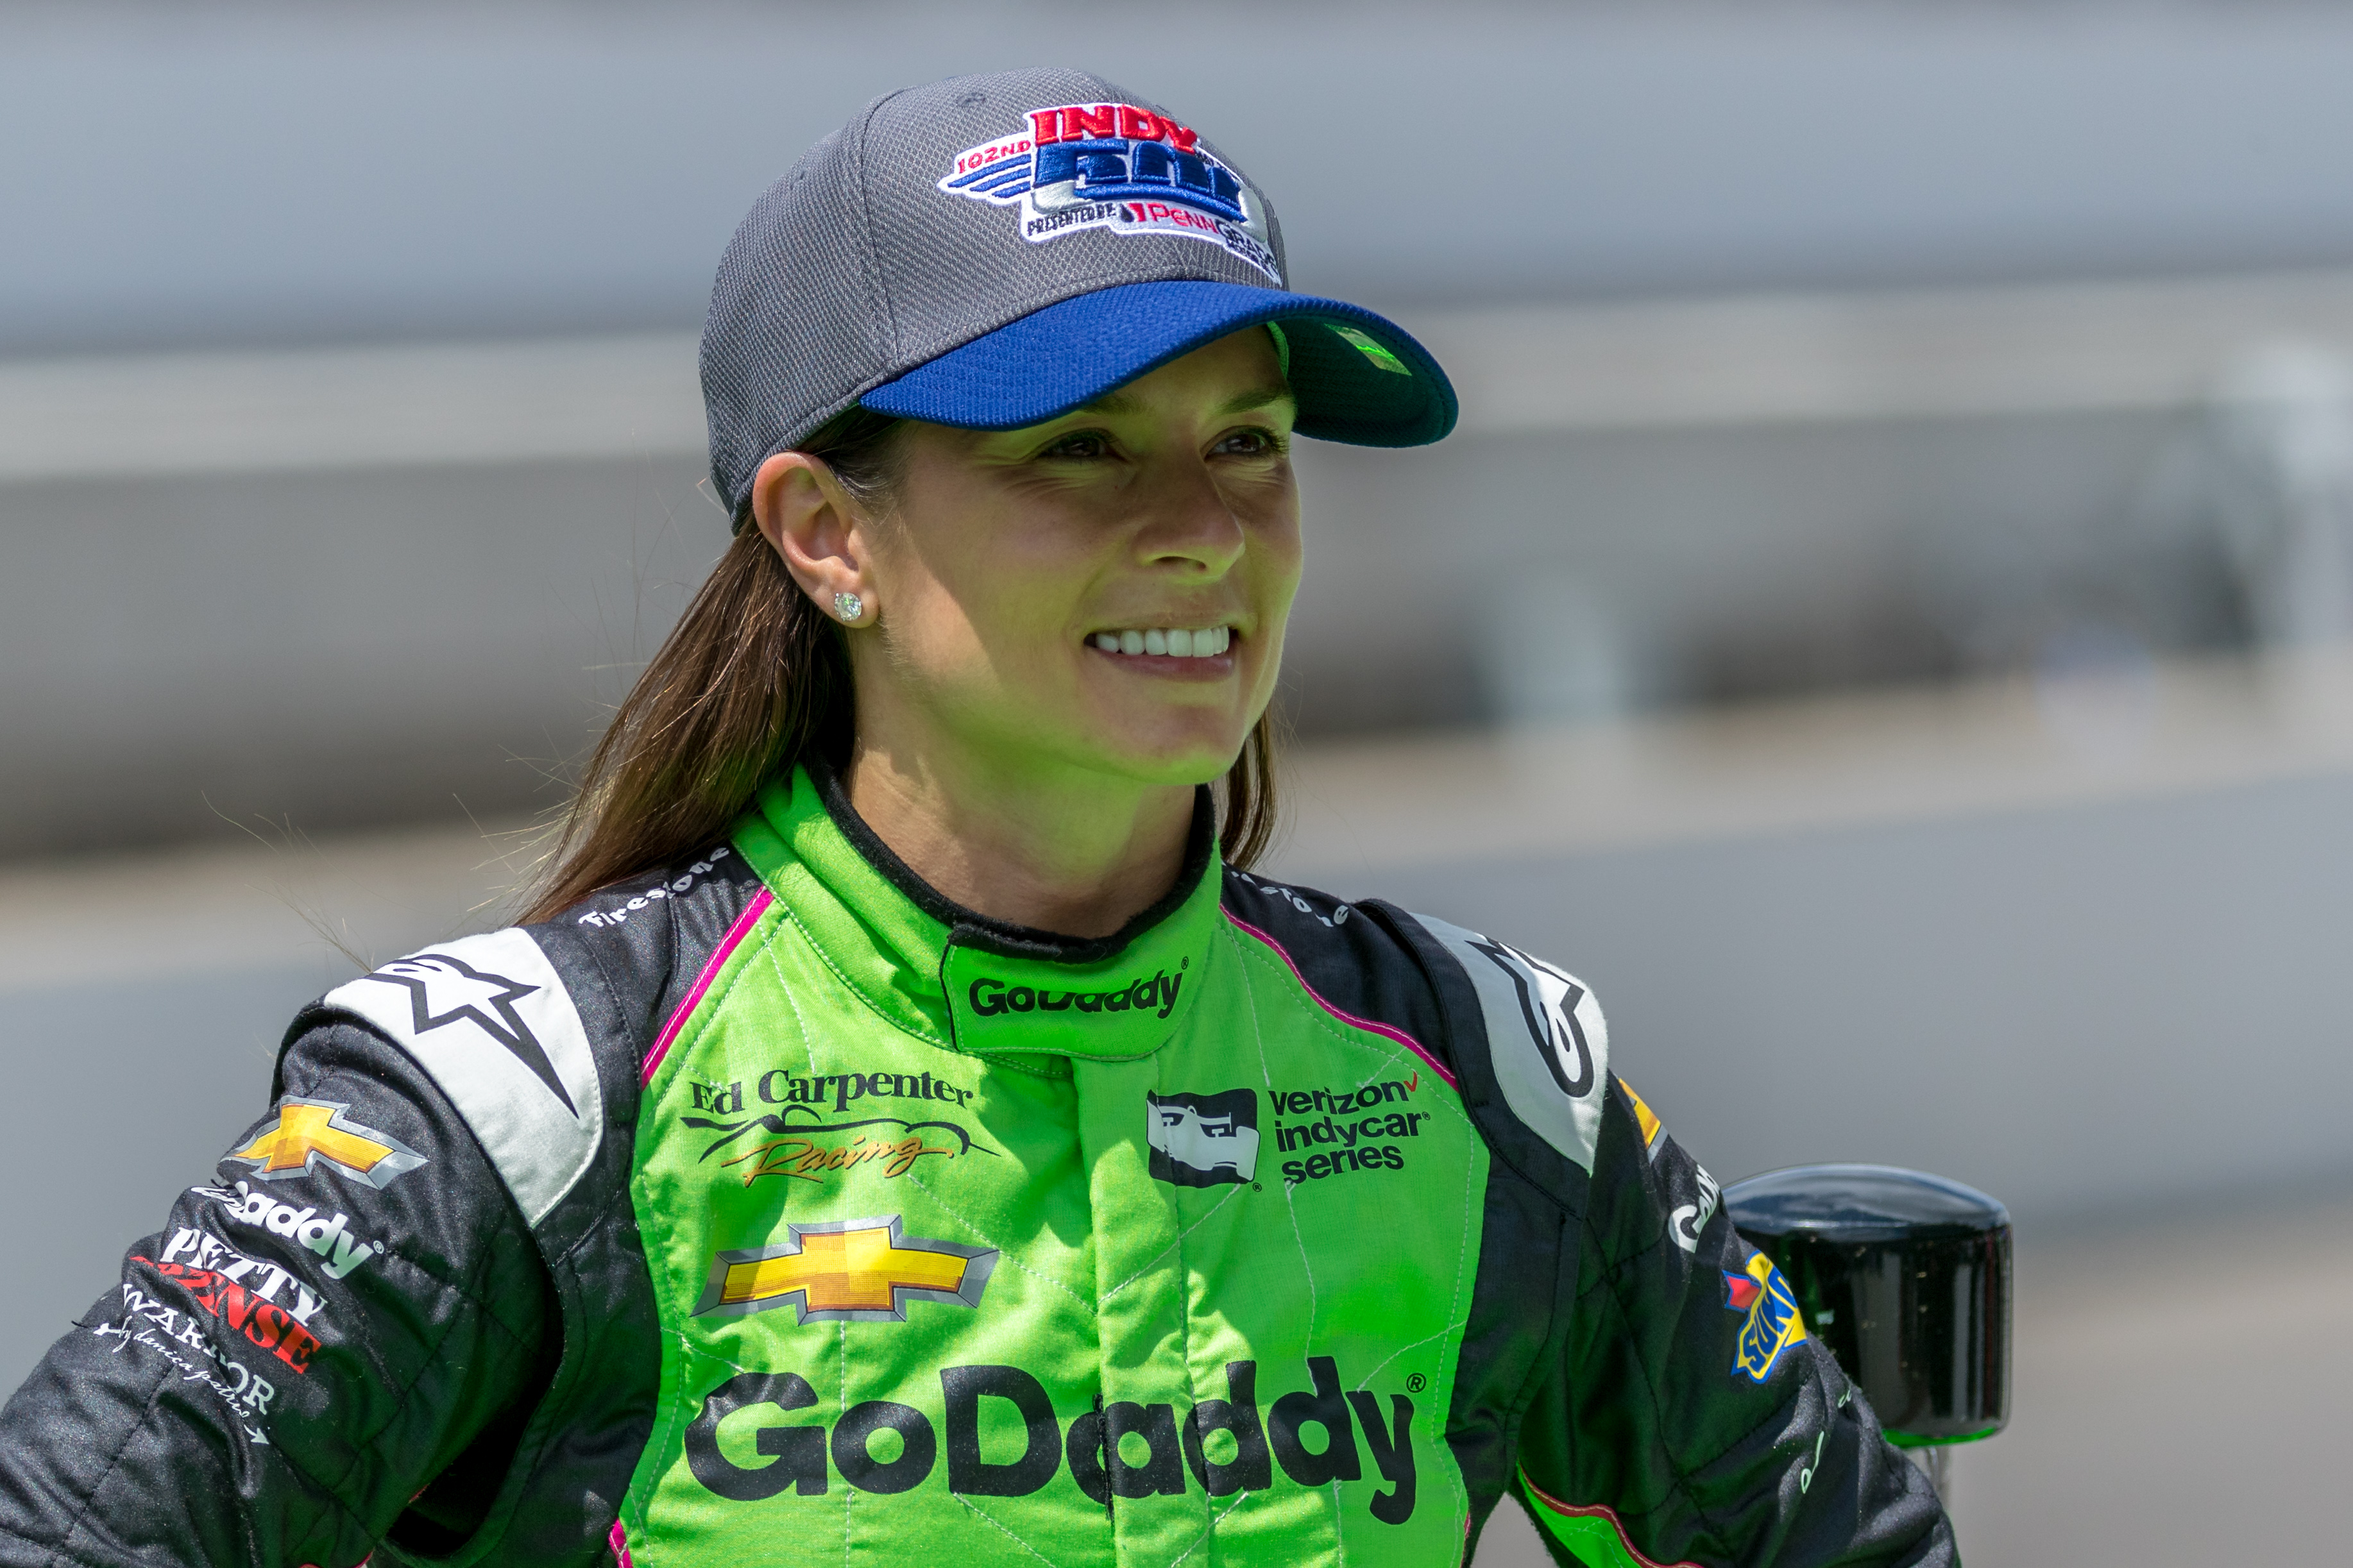 Danica Patrick S Final Race At 2018 Indianapolis 500 What